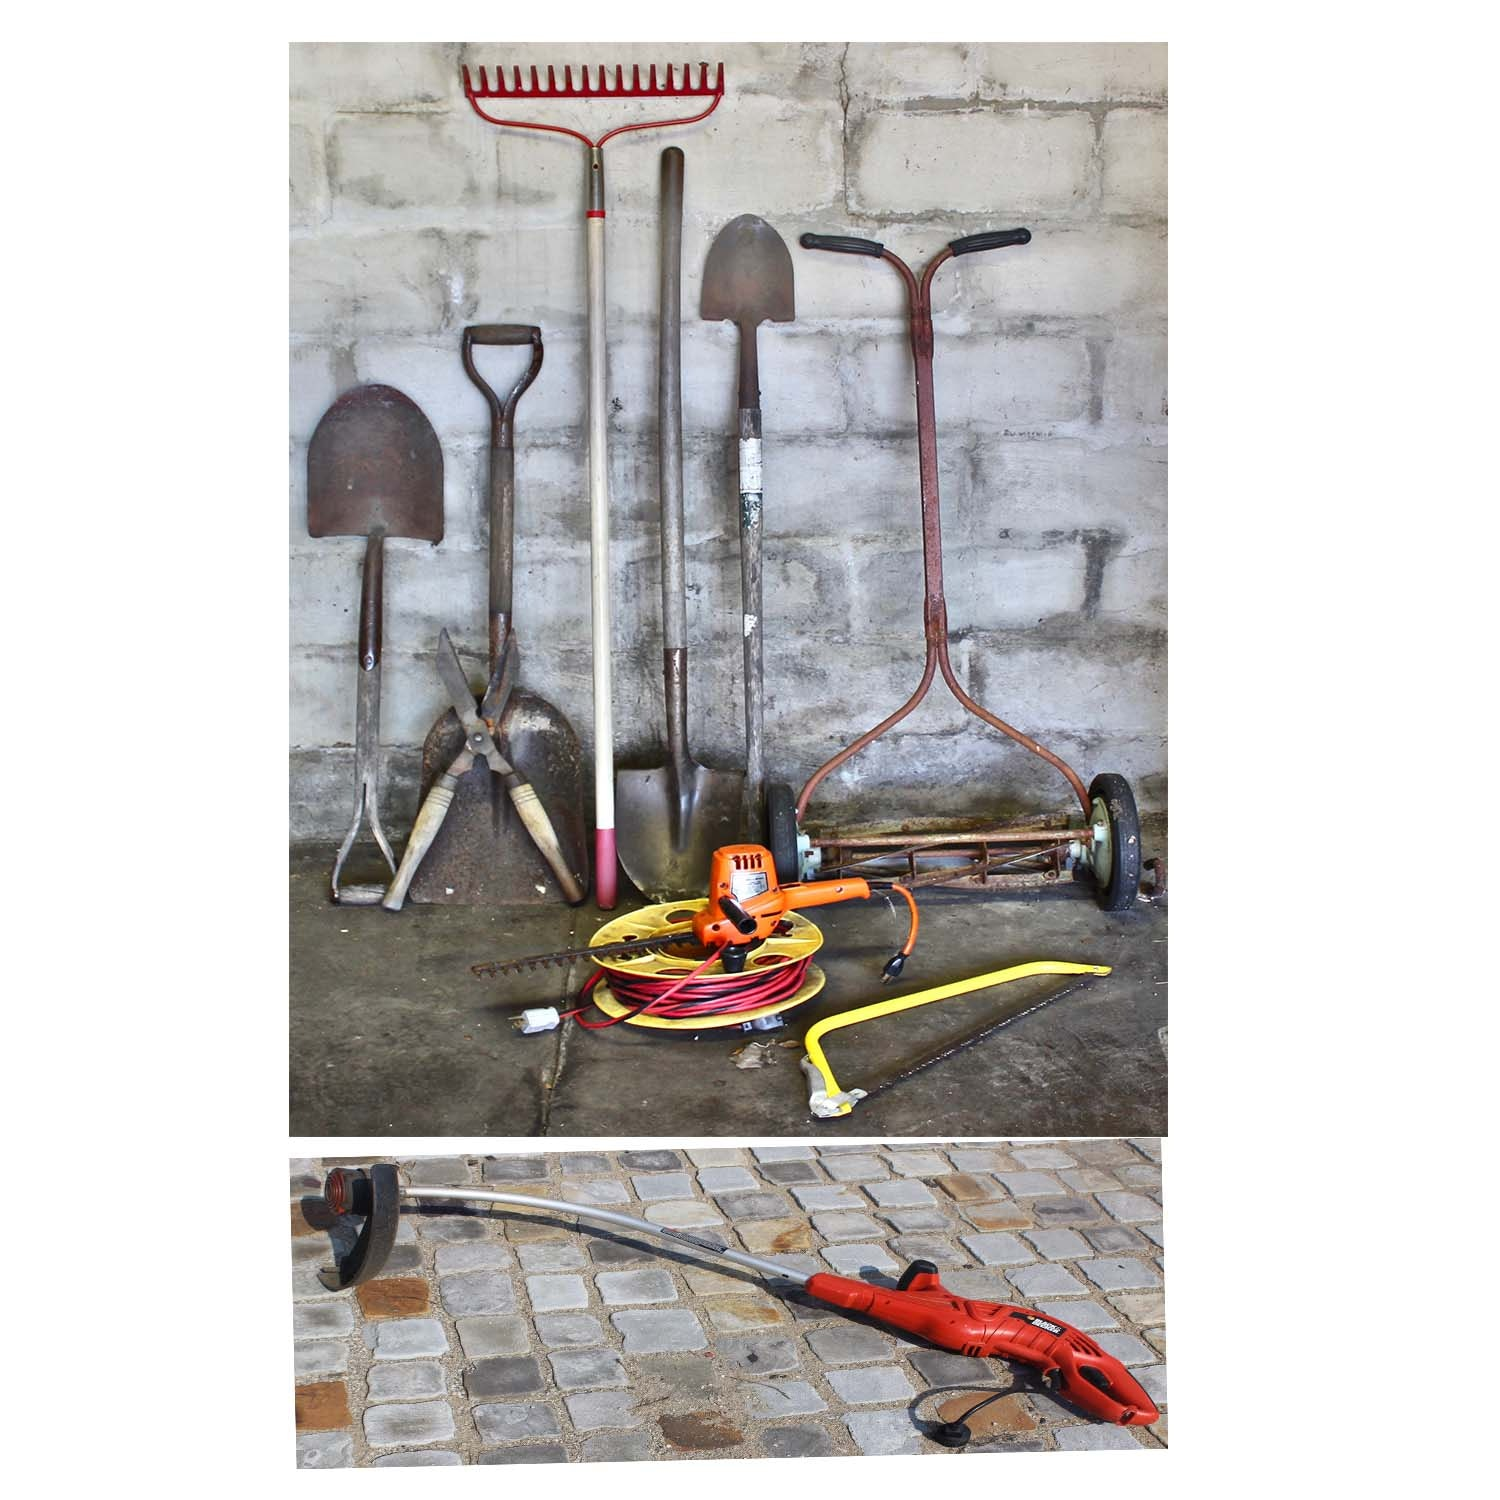 Gardening and Lawncare Tools and Equipment